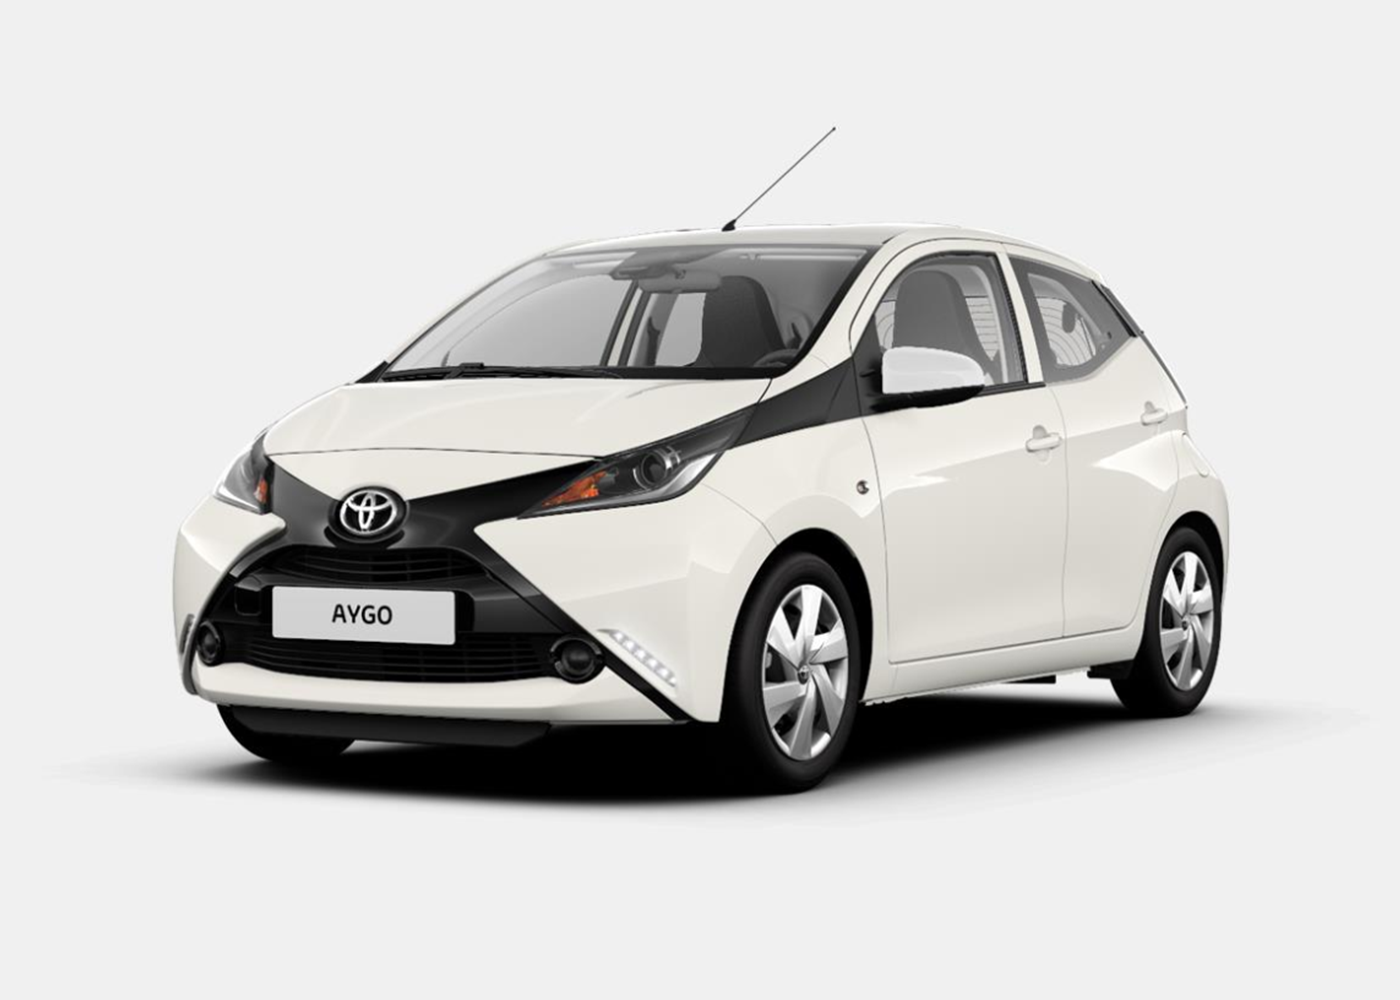 toyota aygo cool white nuova a soli 10185 su miacar uvwy8. Black Bedroom Furniture Sets. Home Design Ideas